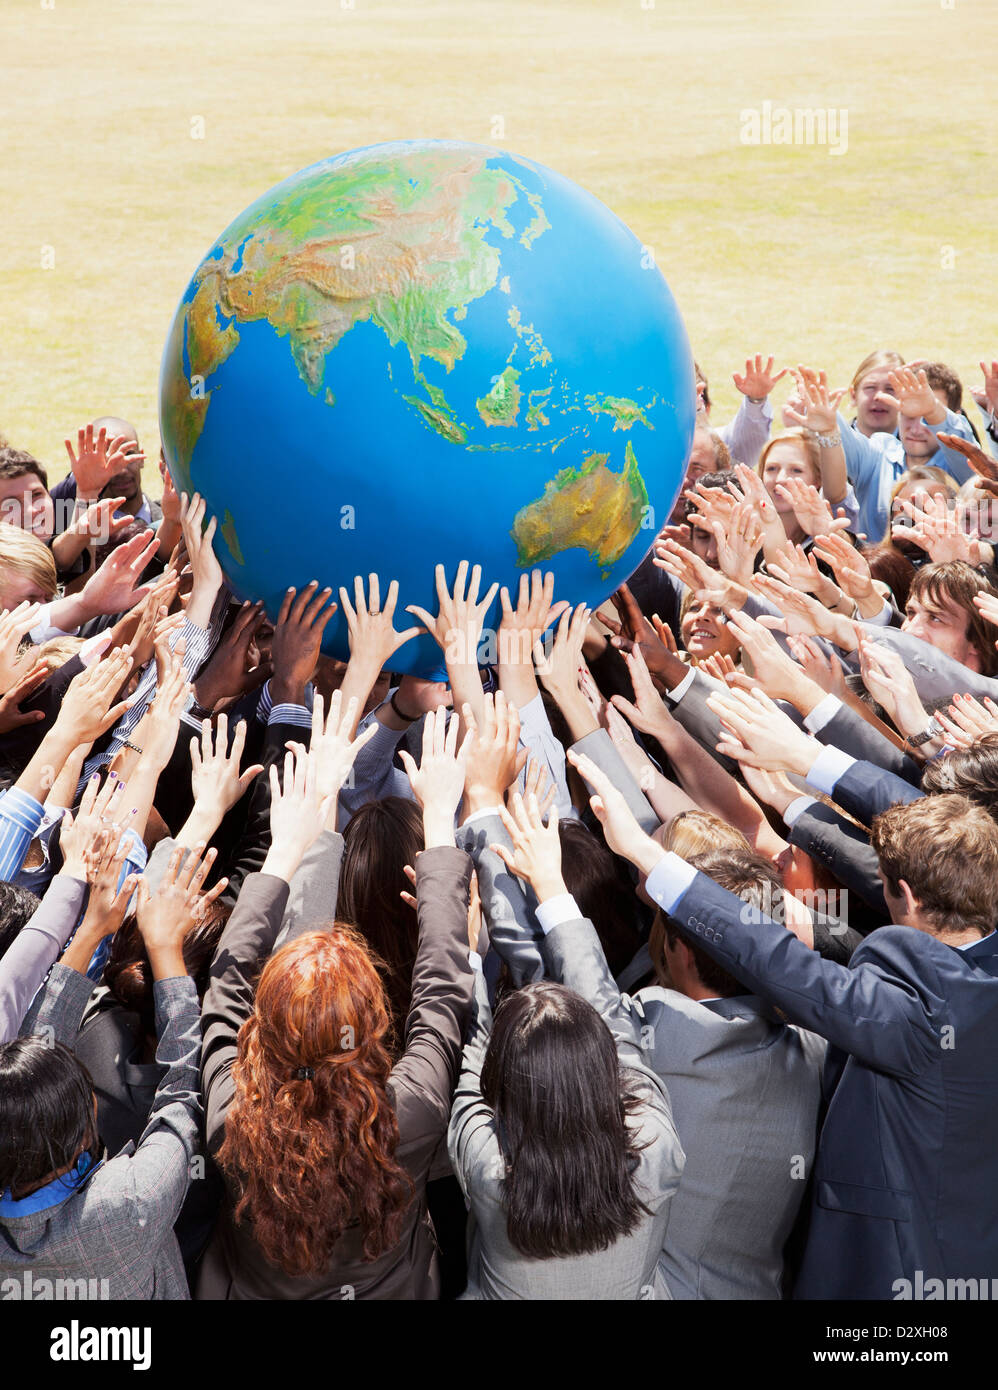 Crowd of business people reaching for globe - Stock Image